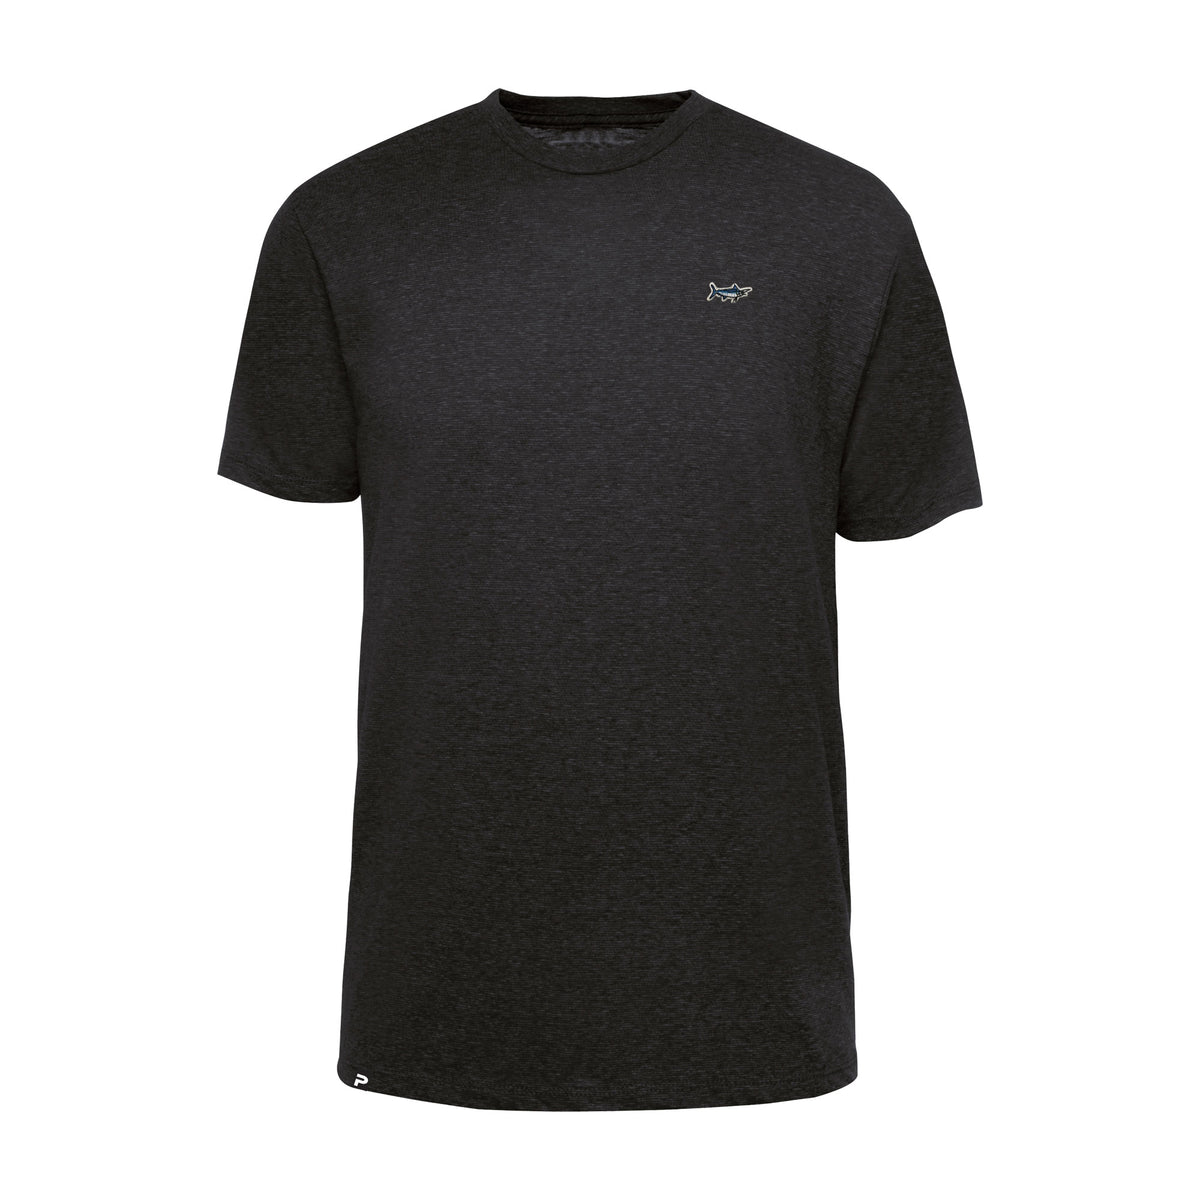 Black Label Dockside T-shirt Big Image - 1